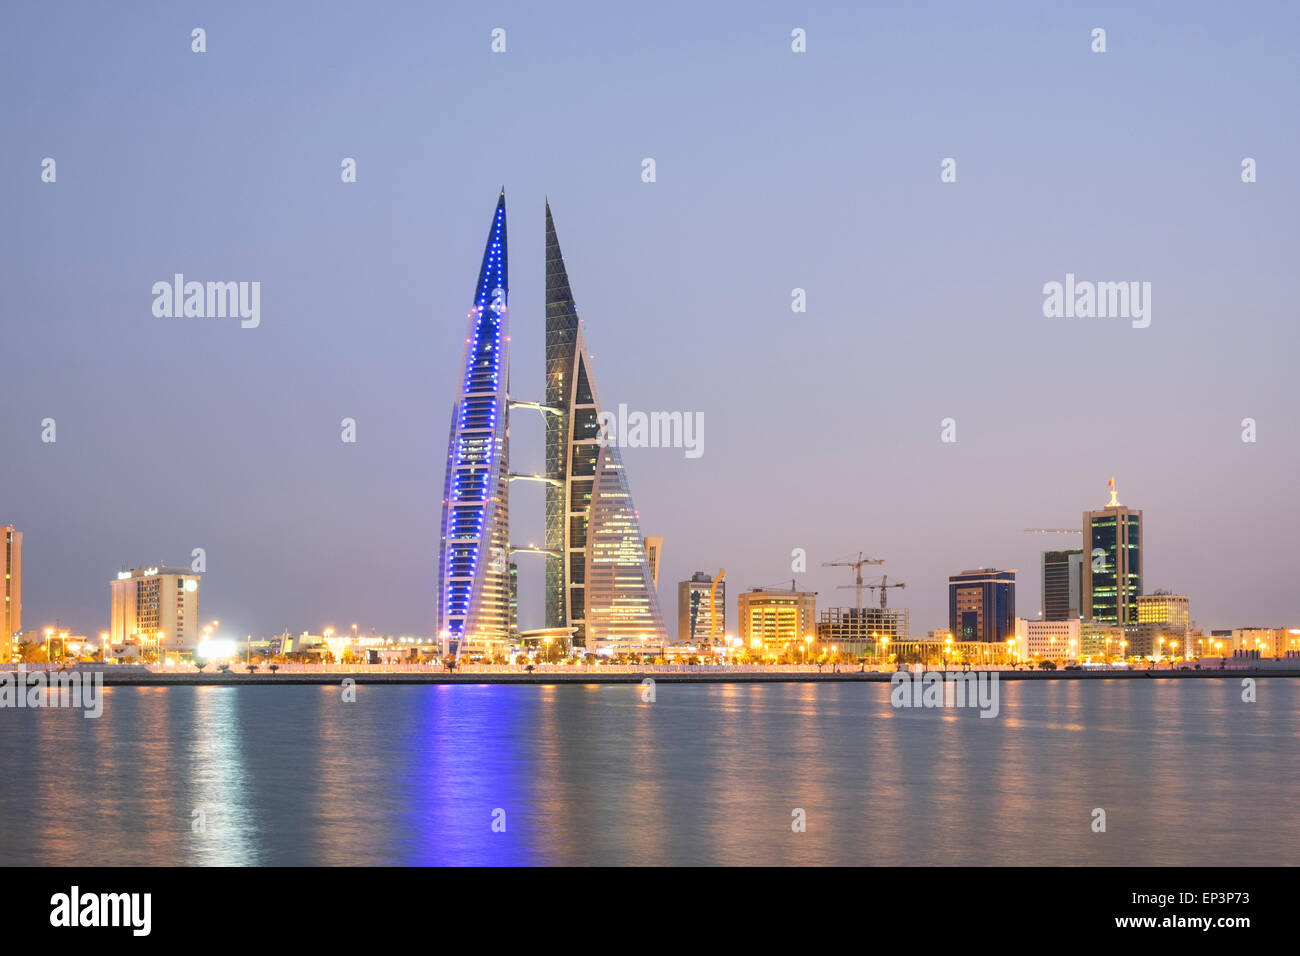 View of World Trade Center and skyline of Manama in Kingdom of Bahrain - Stock Image